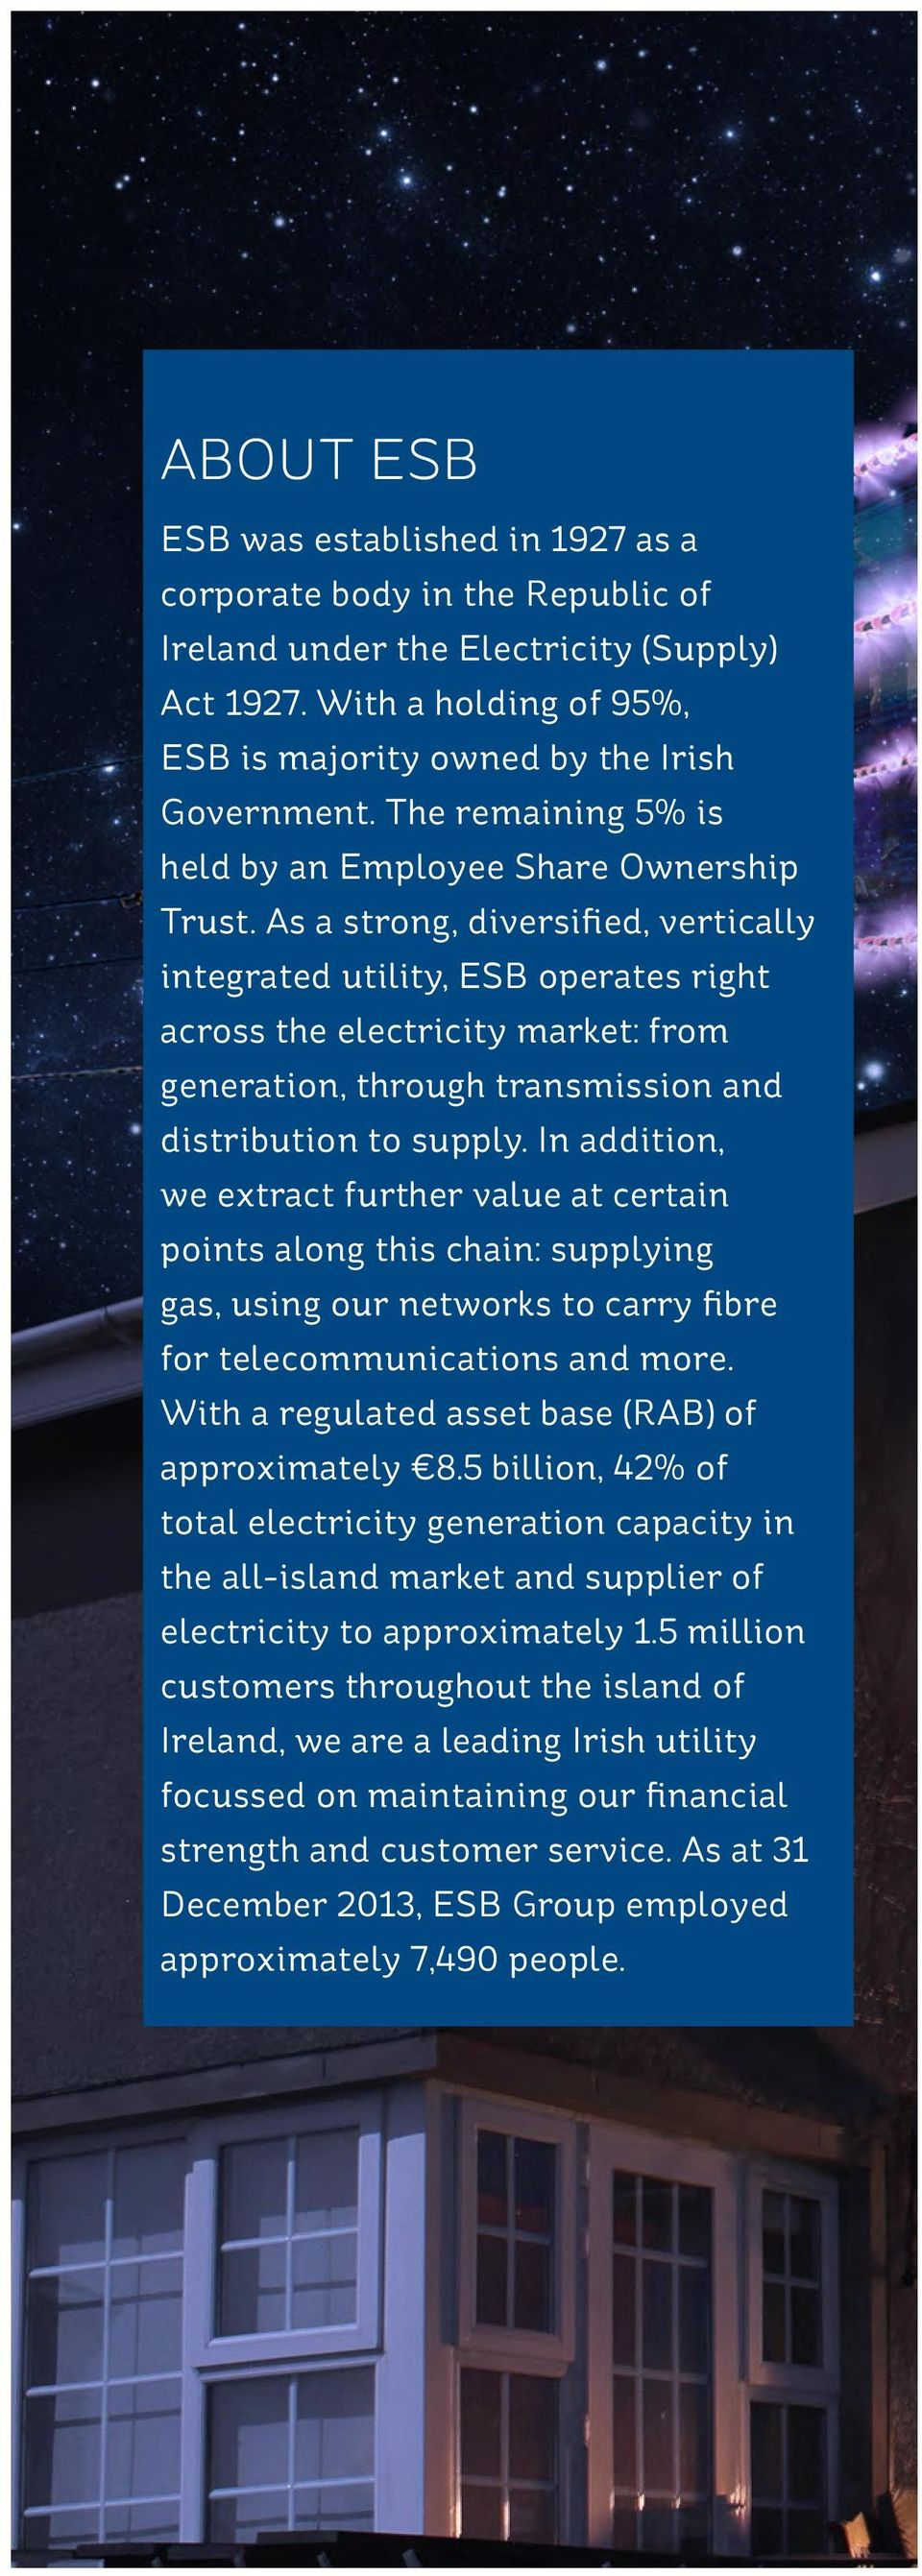 As a strong, diversified, vertically integrated utility, ESB operates right across the electricity market: from generation, through transmission and distribution to supply.